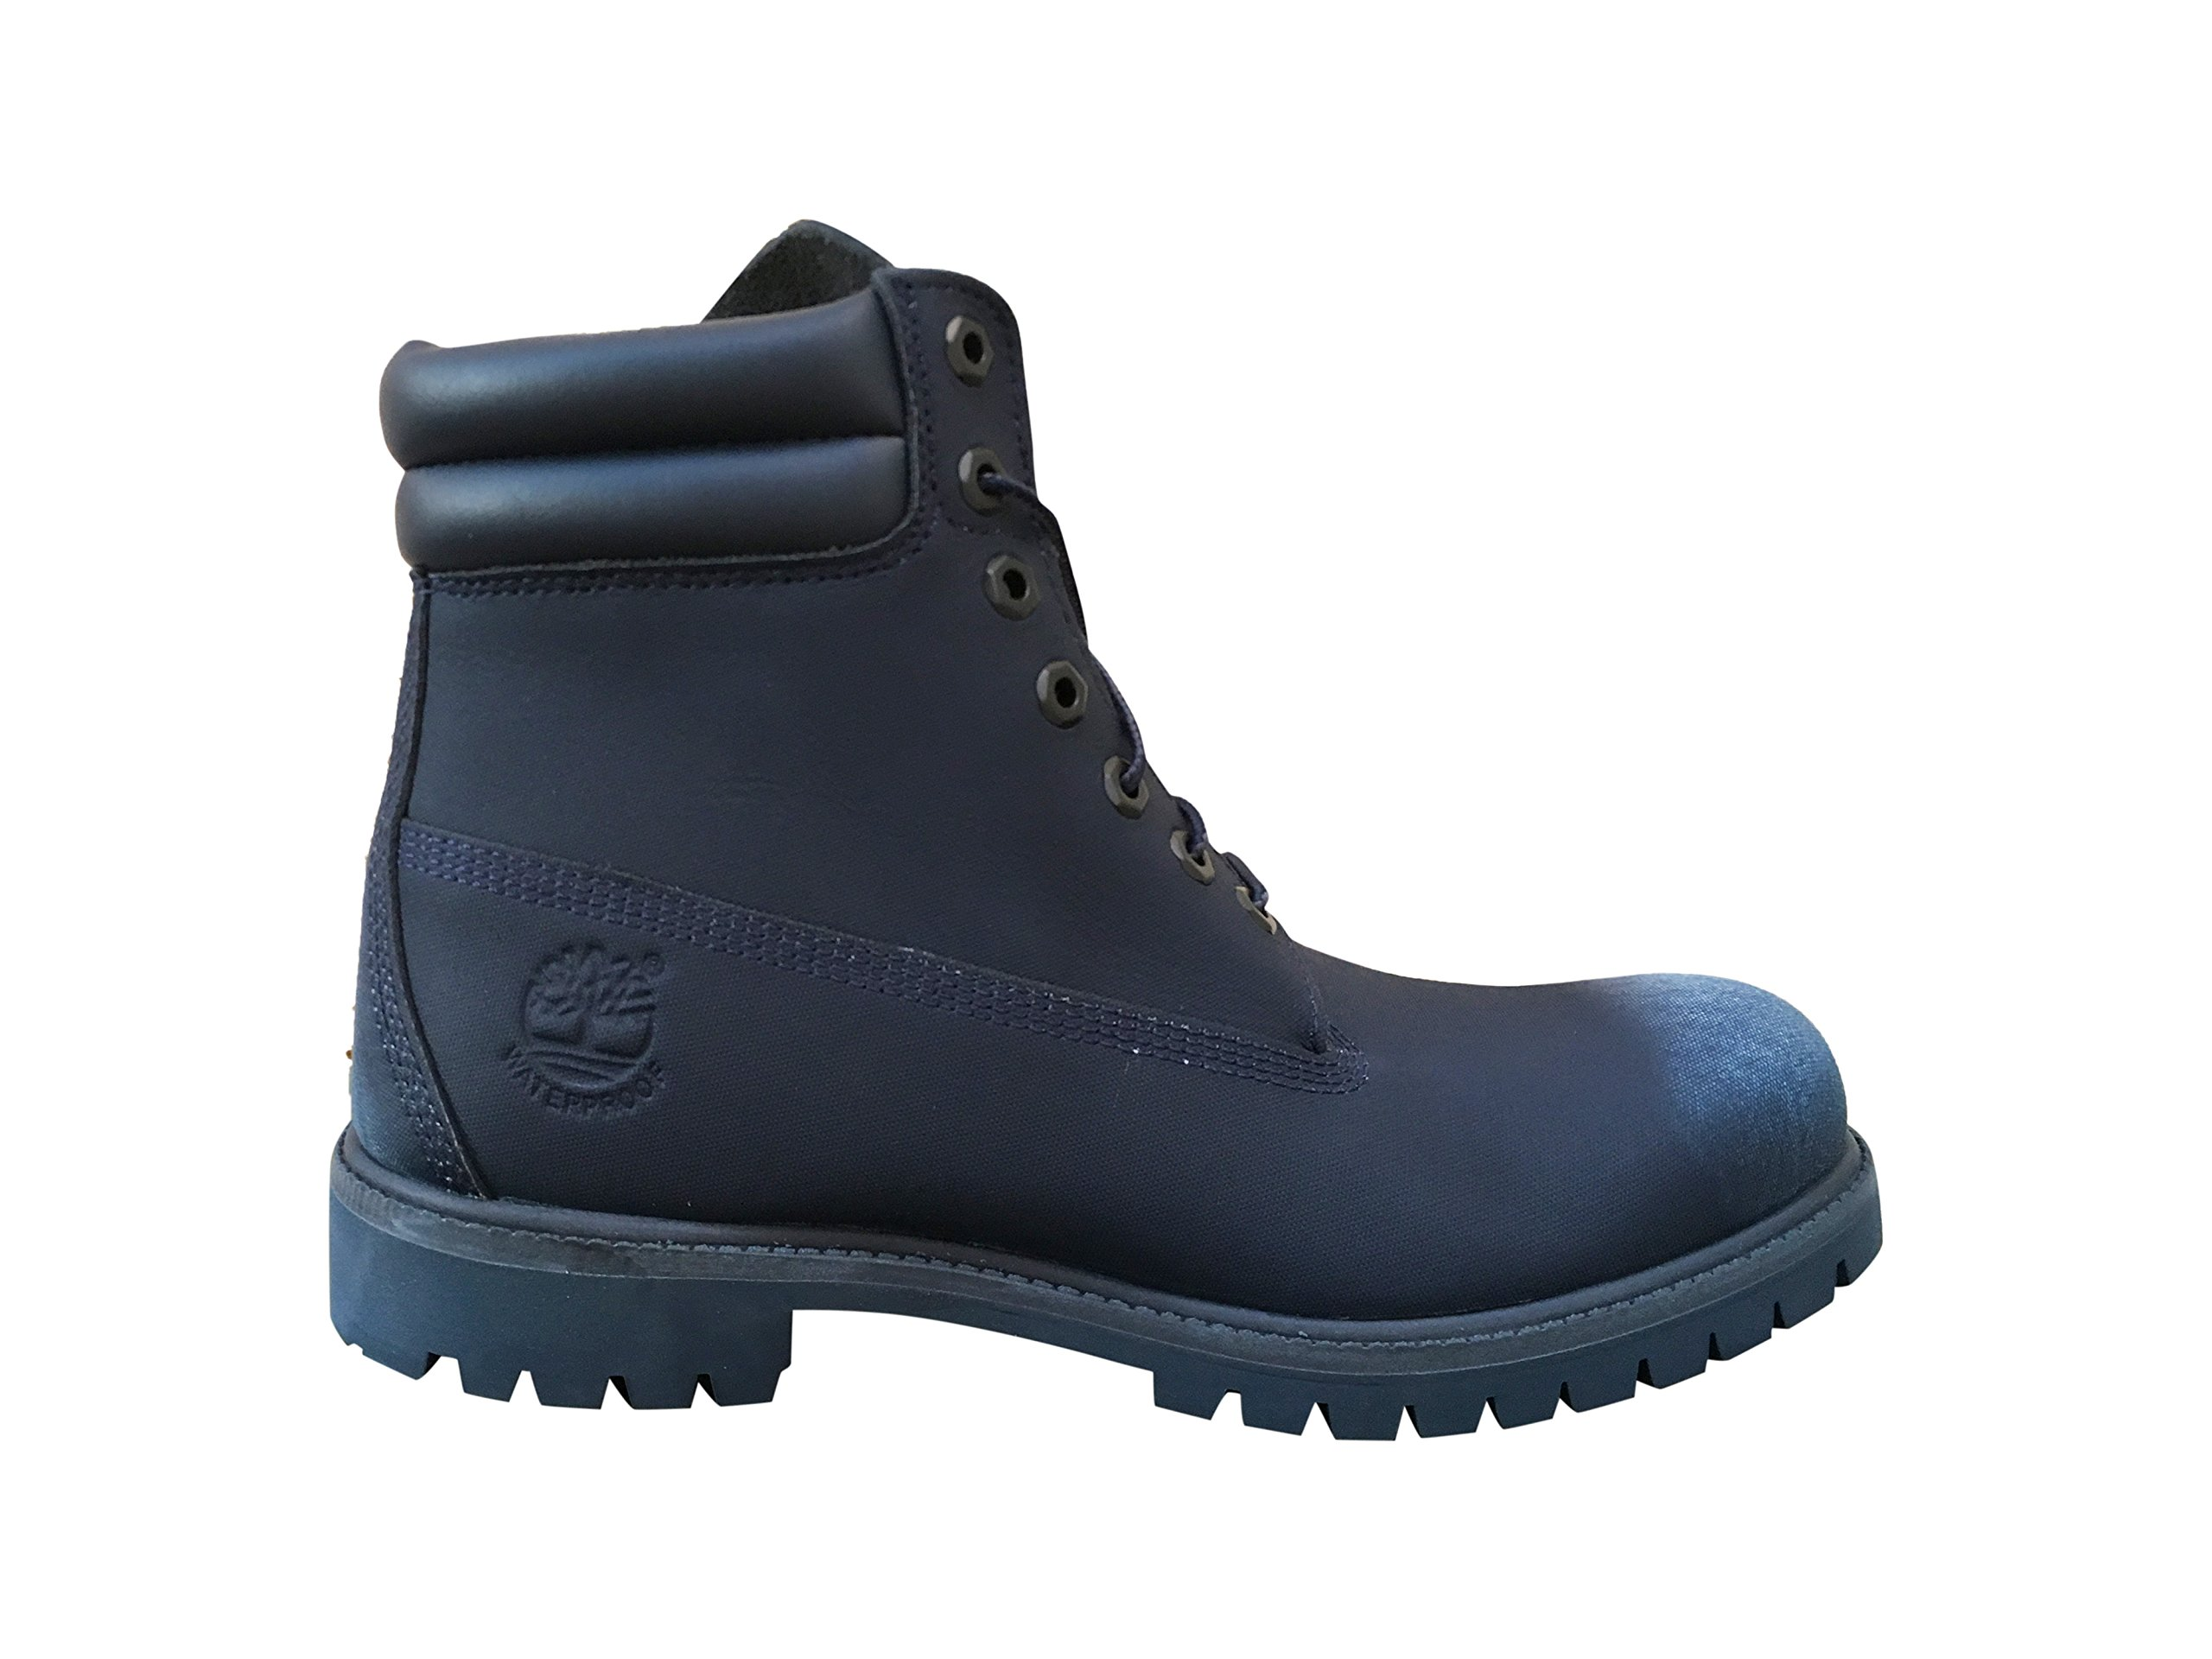 Timberland Men's 6'' Premium Waterproof Boot (8 D(M) US, Navy Tech Tough) by Timberland